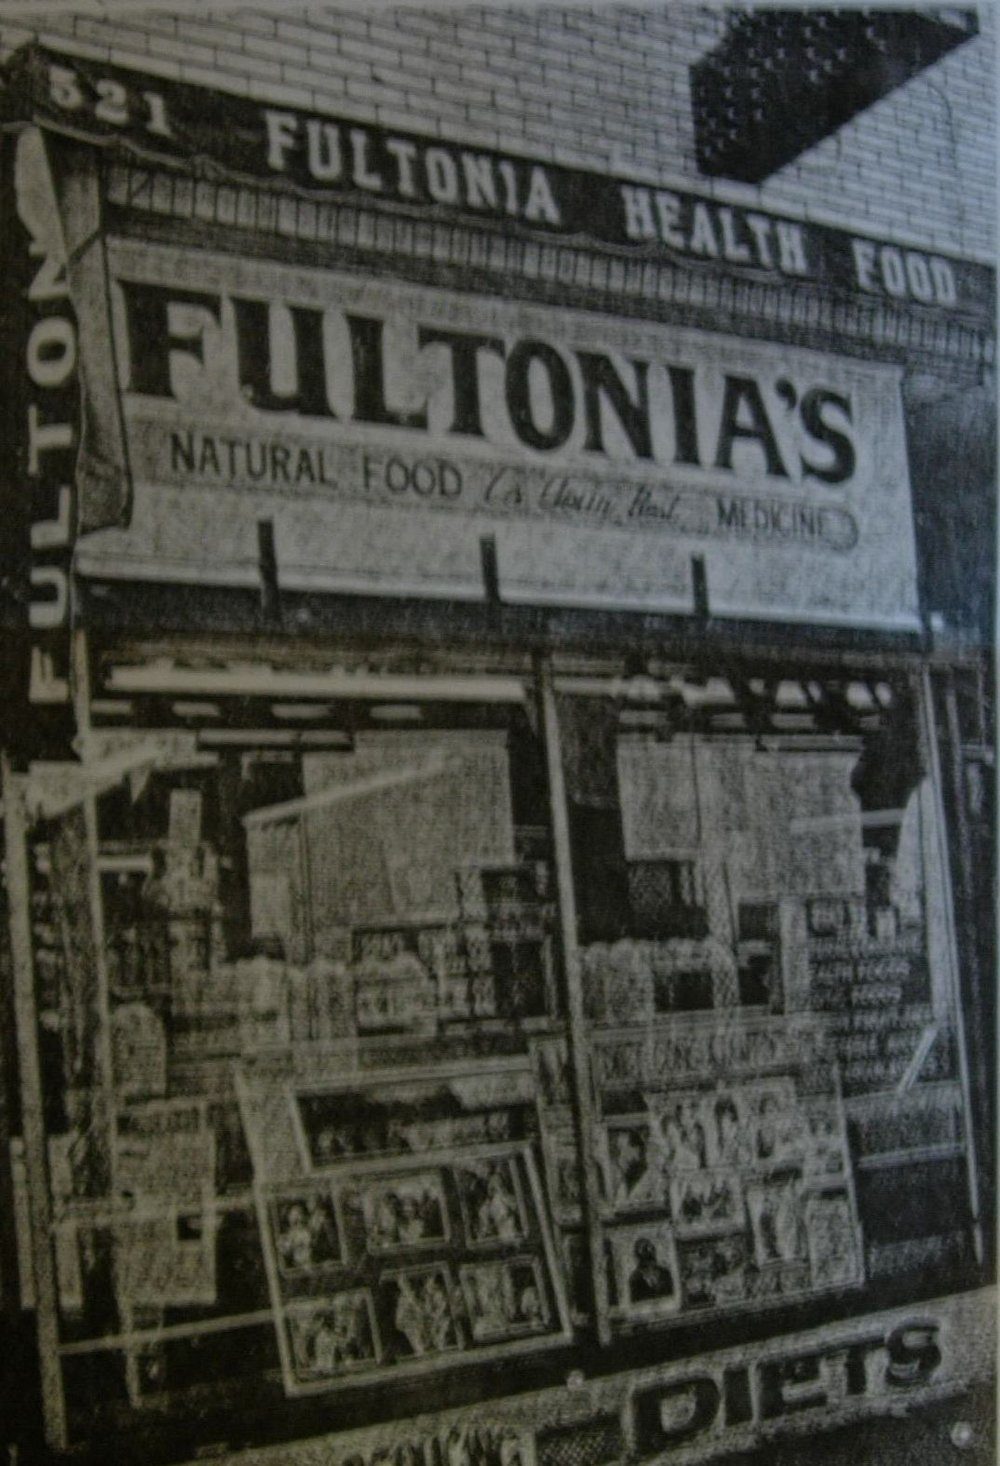 The exterior of Dr. Fulton's store circa 1980s